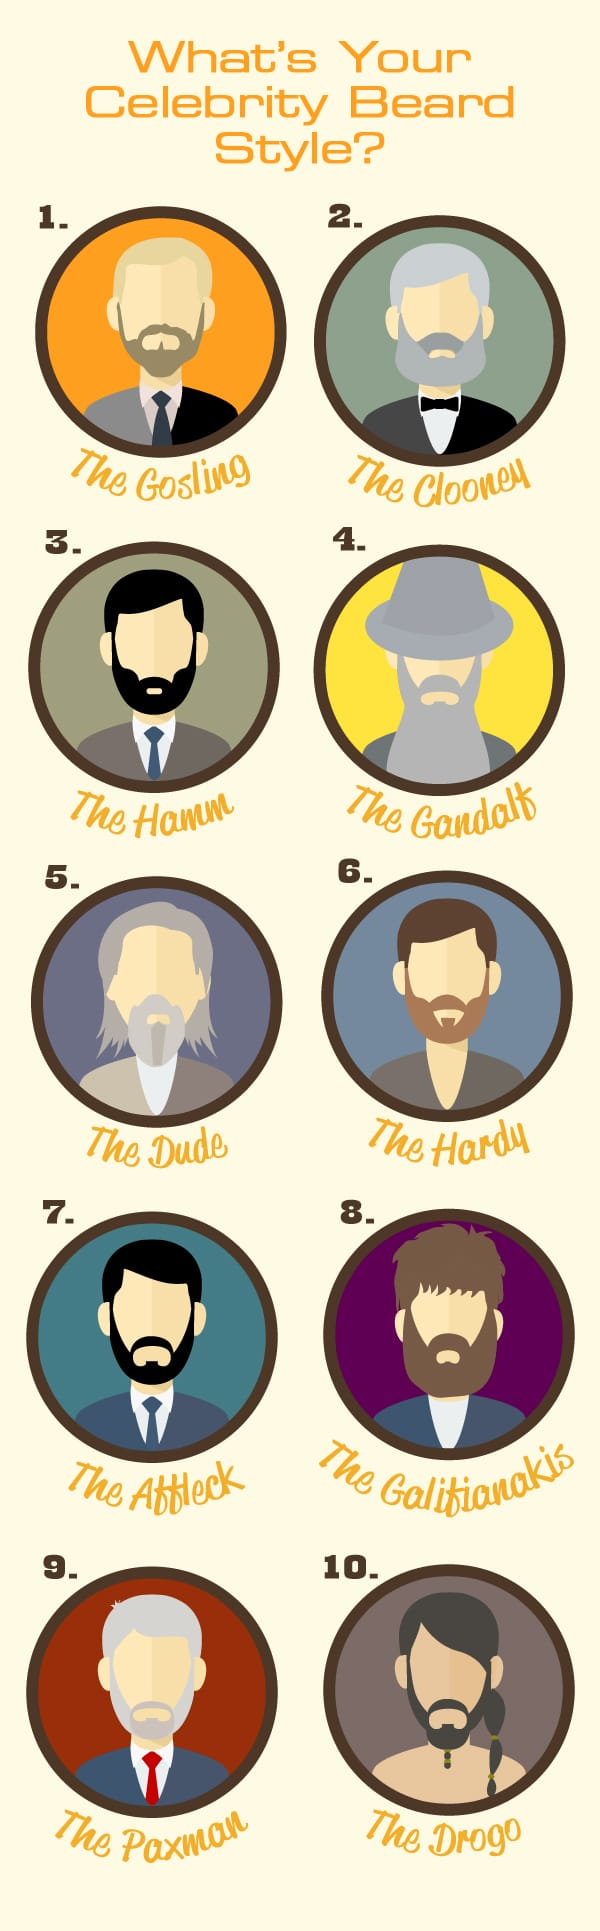 What's Your Celebrity Beard Style?